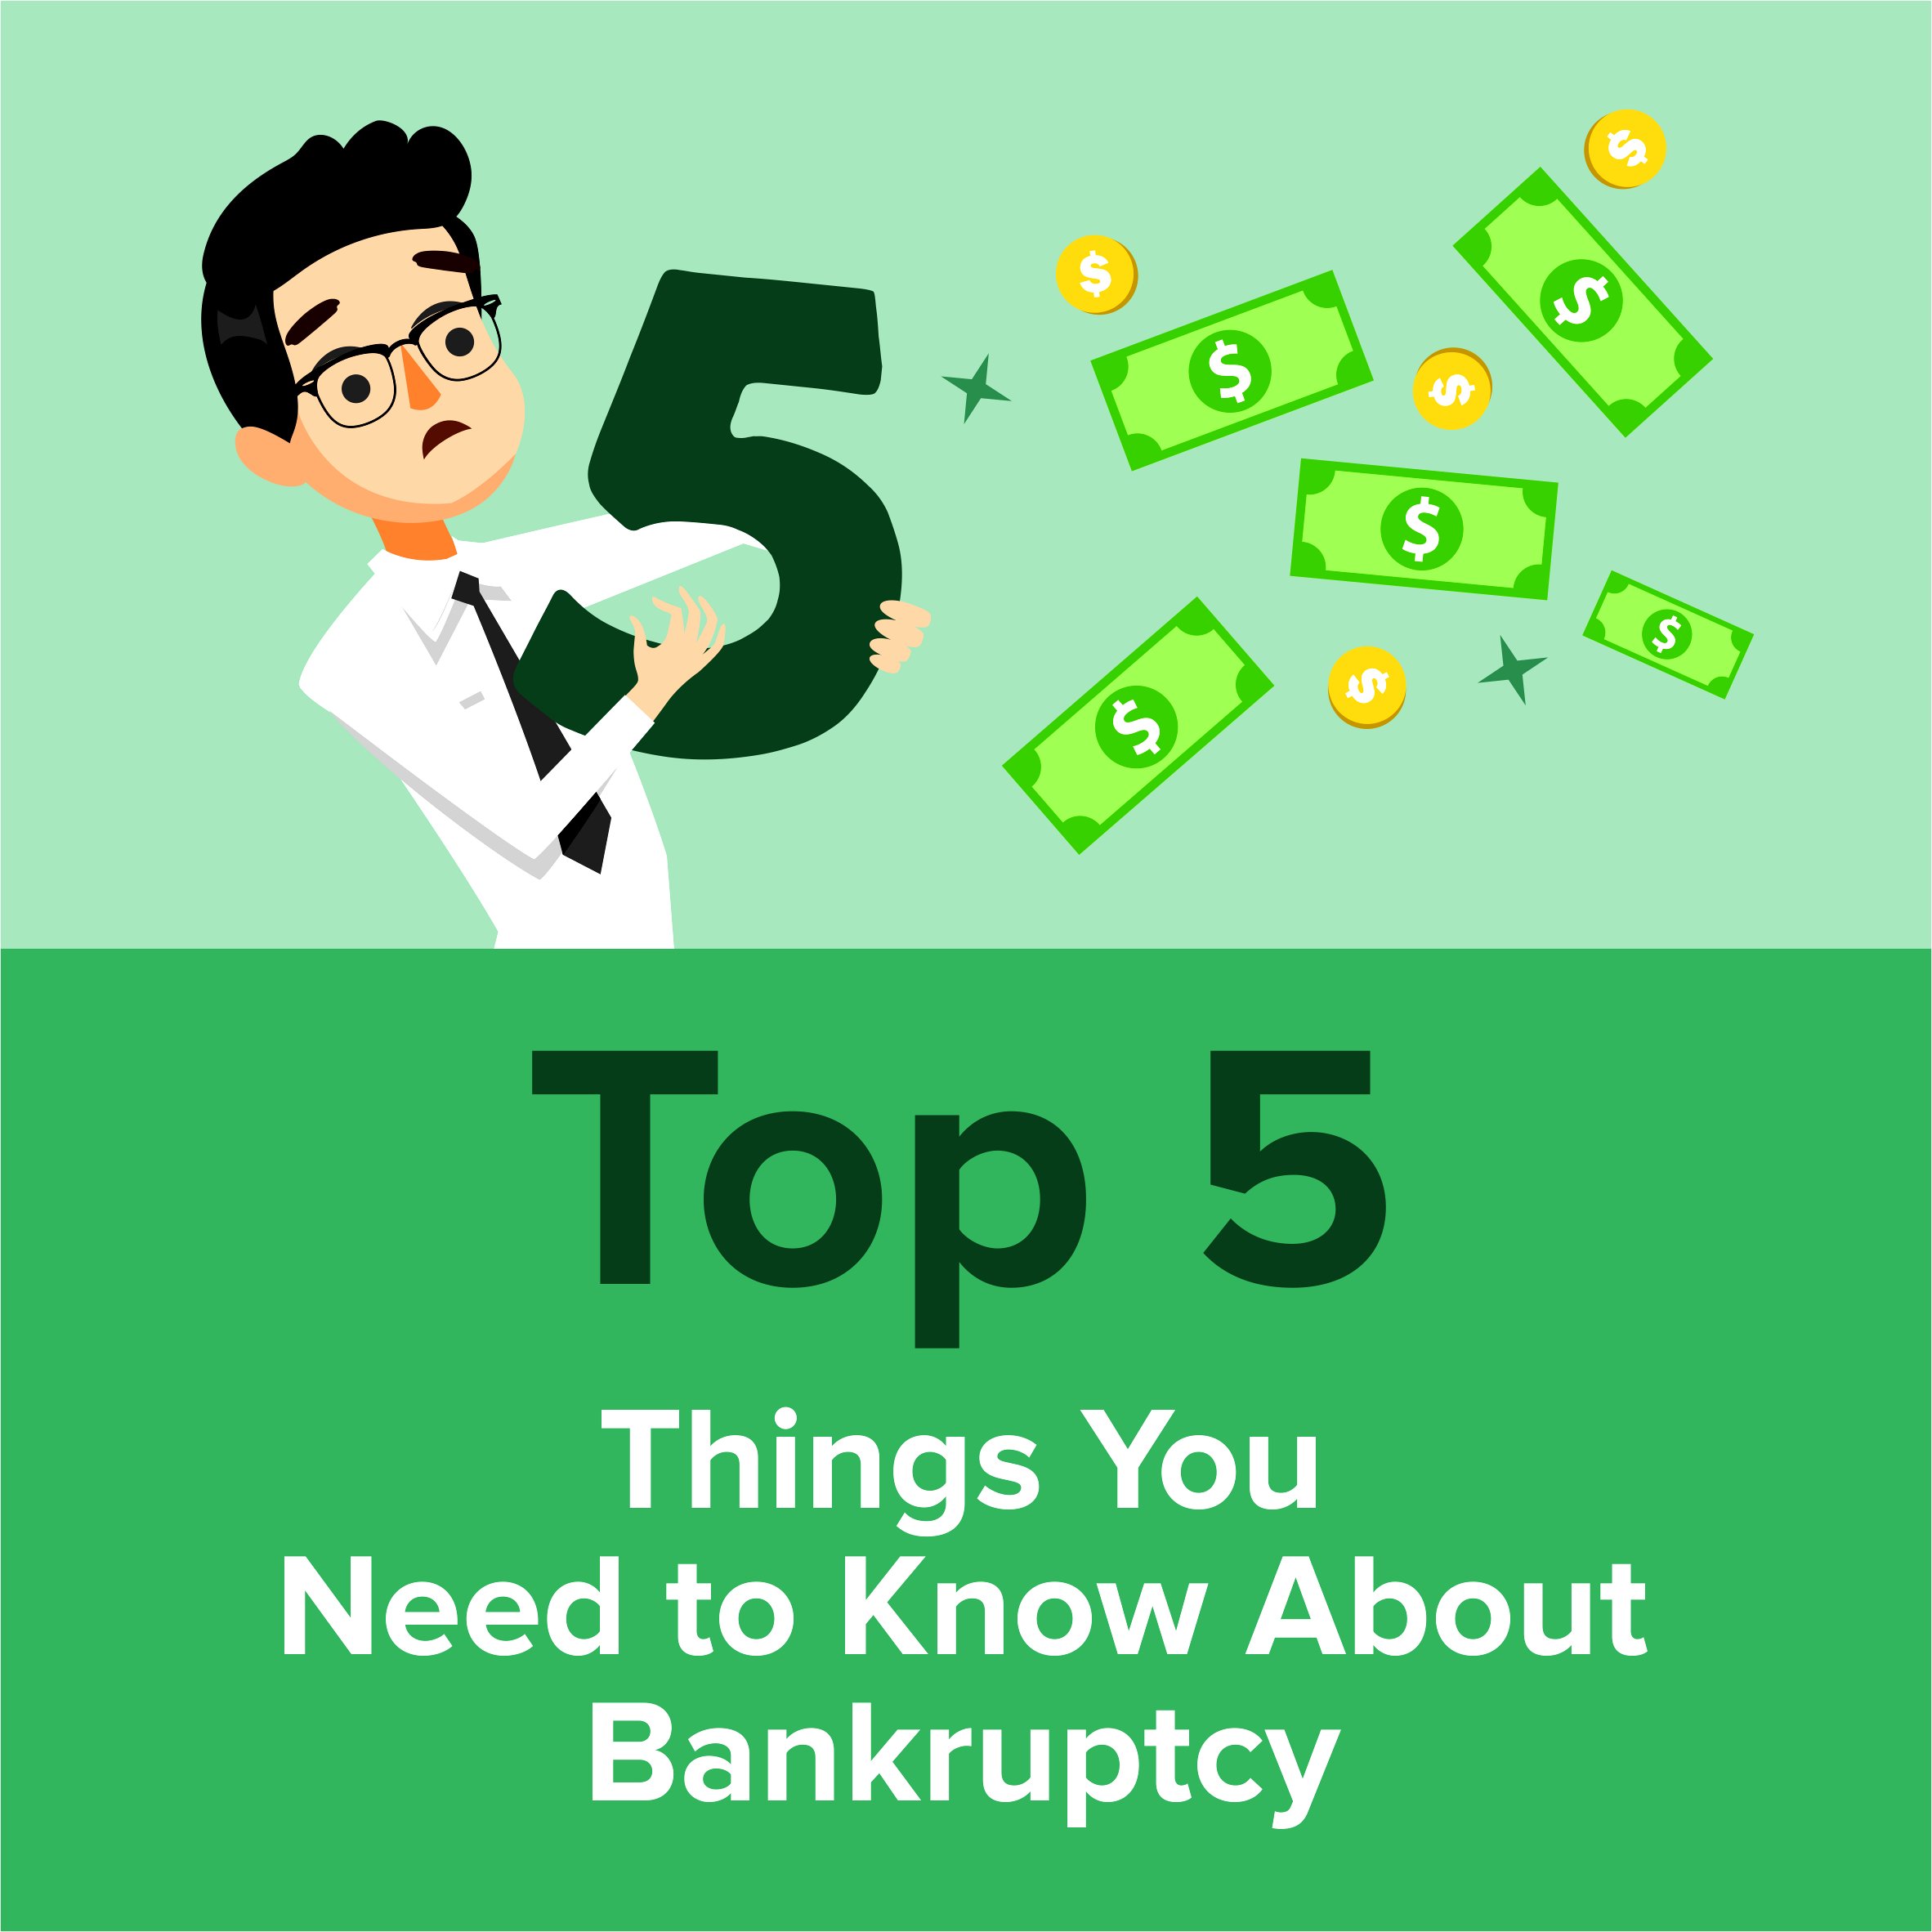 Top 5 Things You Need to Know About Bankruptcy